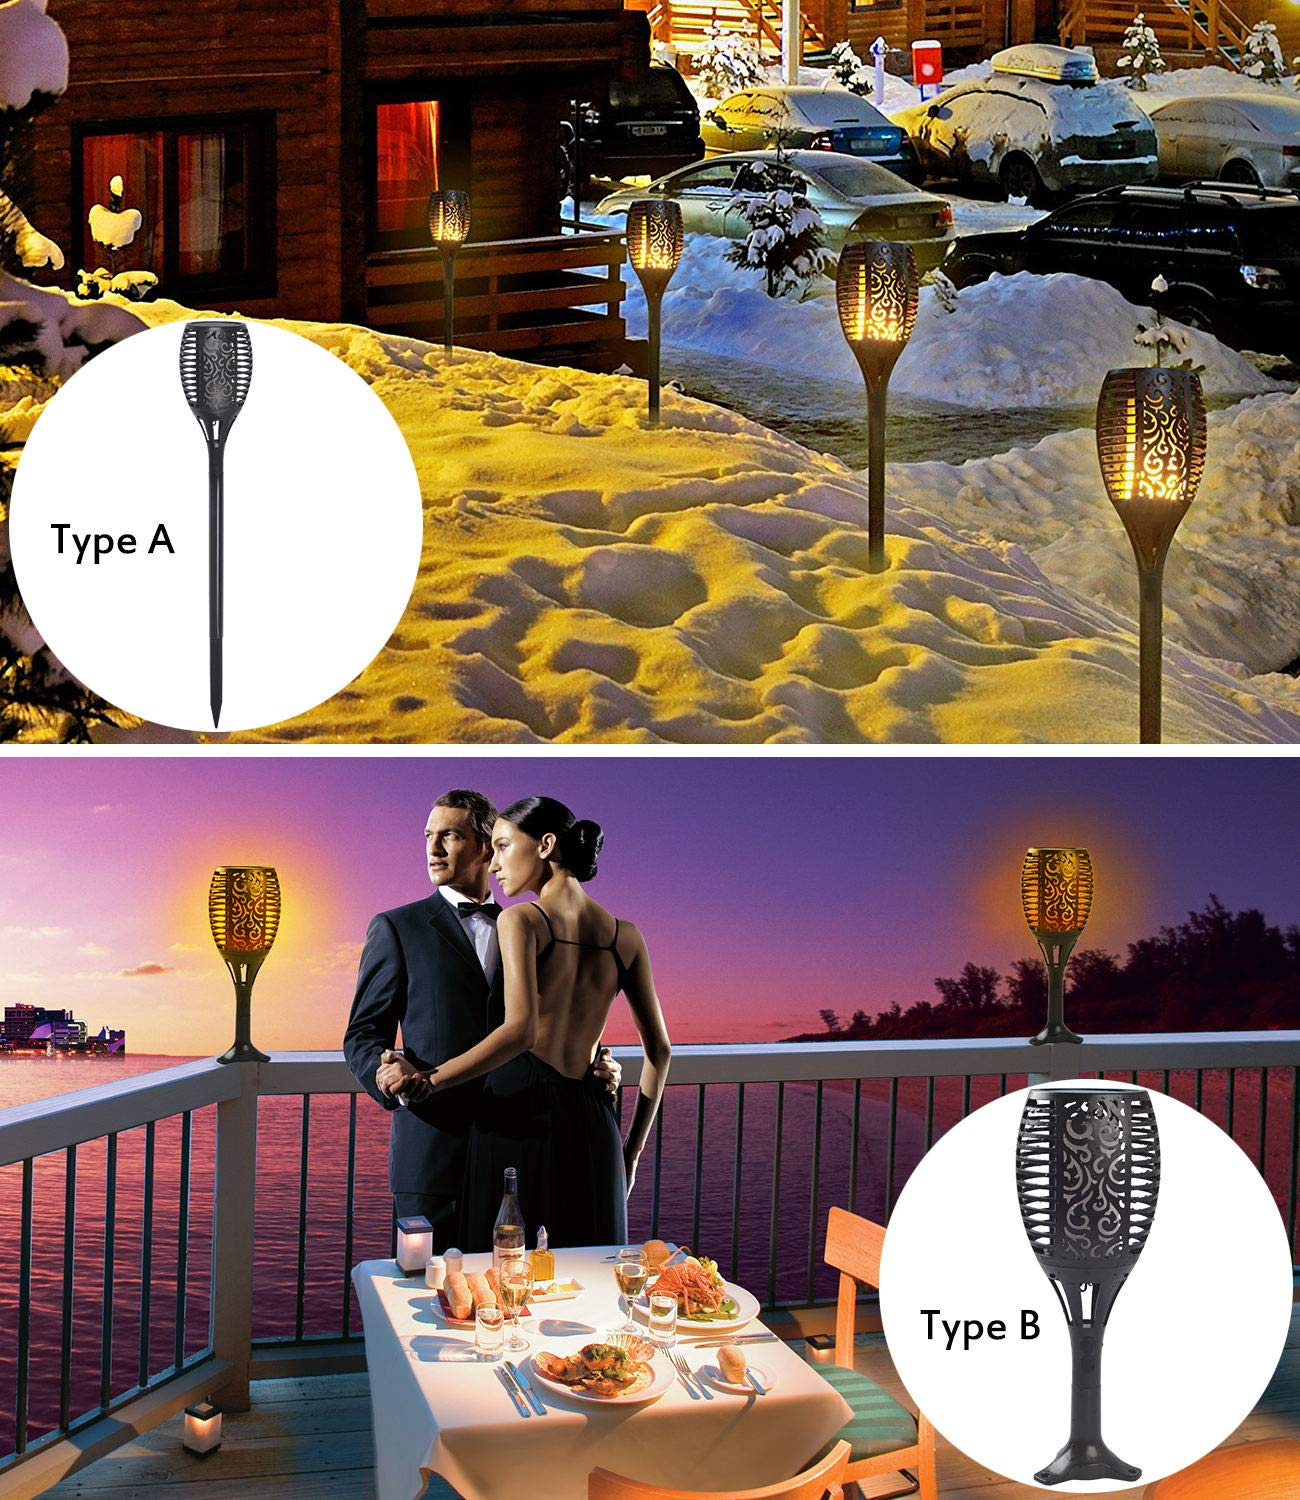 """Solar Torch Lights, Waterproof Flickering Flame Solar Torches Dancing Flames Landscape USB Charging Decoration Lighting Dusk to Dawn Outdoor Security Path Light for Garden Patio Yard Driveway 2 Pack - GORGEOUS DANCING FLAMES DESIGN: A safe alternative to the real """"flames"""" - LEDs in the light cast a safe, soft, mood-enhancing glow. Please note the actual height of the item is 28.4 inches. TWO CHARGING MODES:Different from general solar torch light, it could powred by Solar energy and USB Charging,you can place it anywhereonce powered, no matter in sunny day,in winter, rainy day or cloudy day. THREE EASY INSTALLATION: Pathway, Floor, Table available. No wiring required, simply install it anywhere you like and enjoy the warm torch light. - patio, outdoor-lights, outdoor-decor - 81FXK3q9GUL -"""